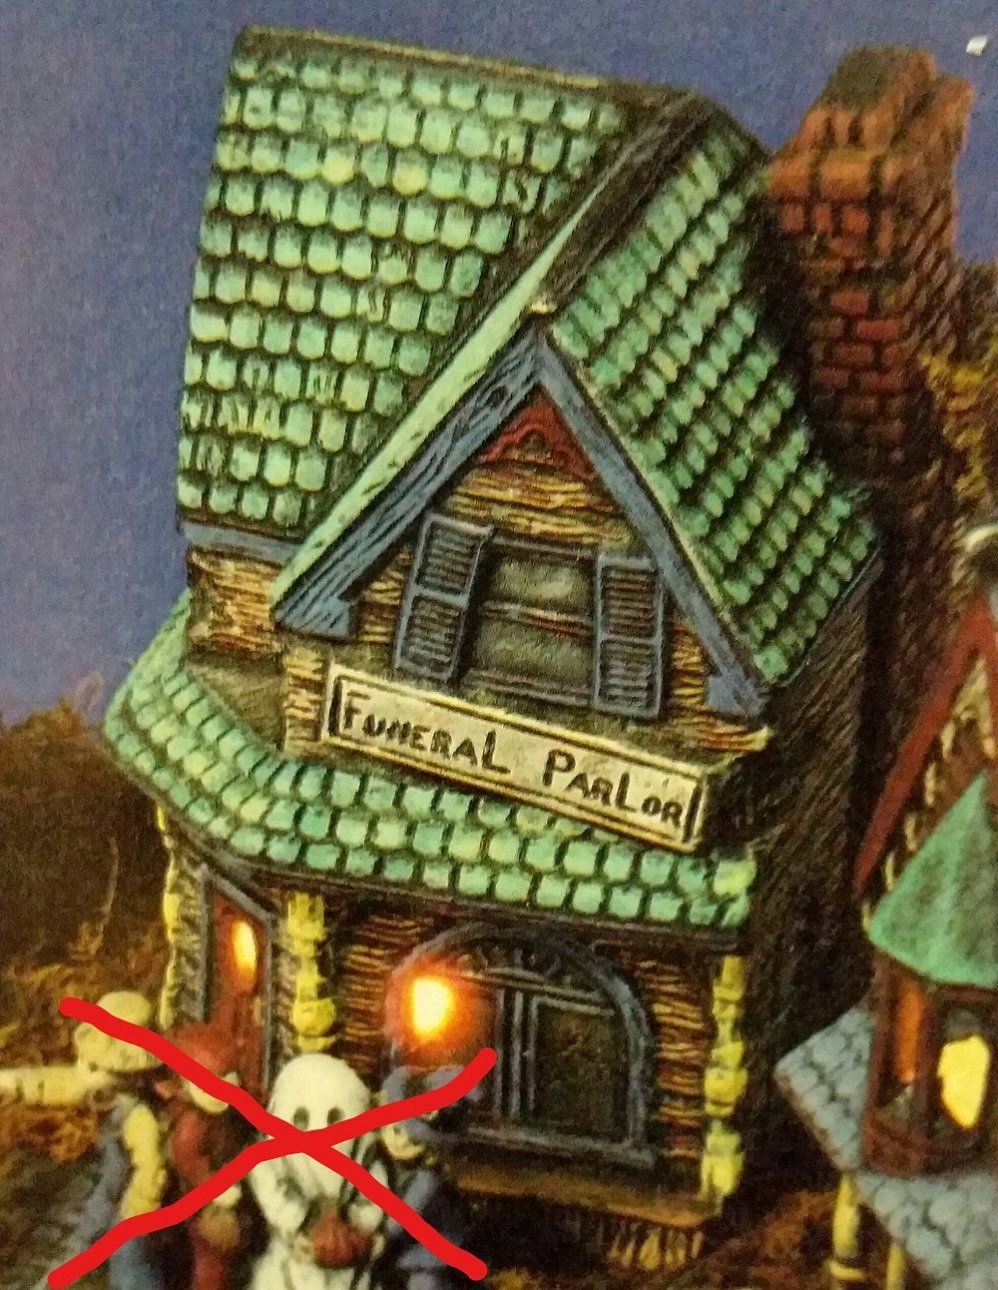 Unpainted Ceramic Bisque Funeral Parlor Halloween Haunted House